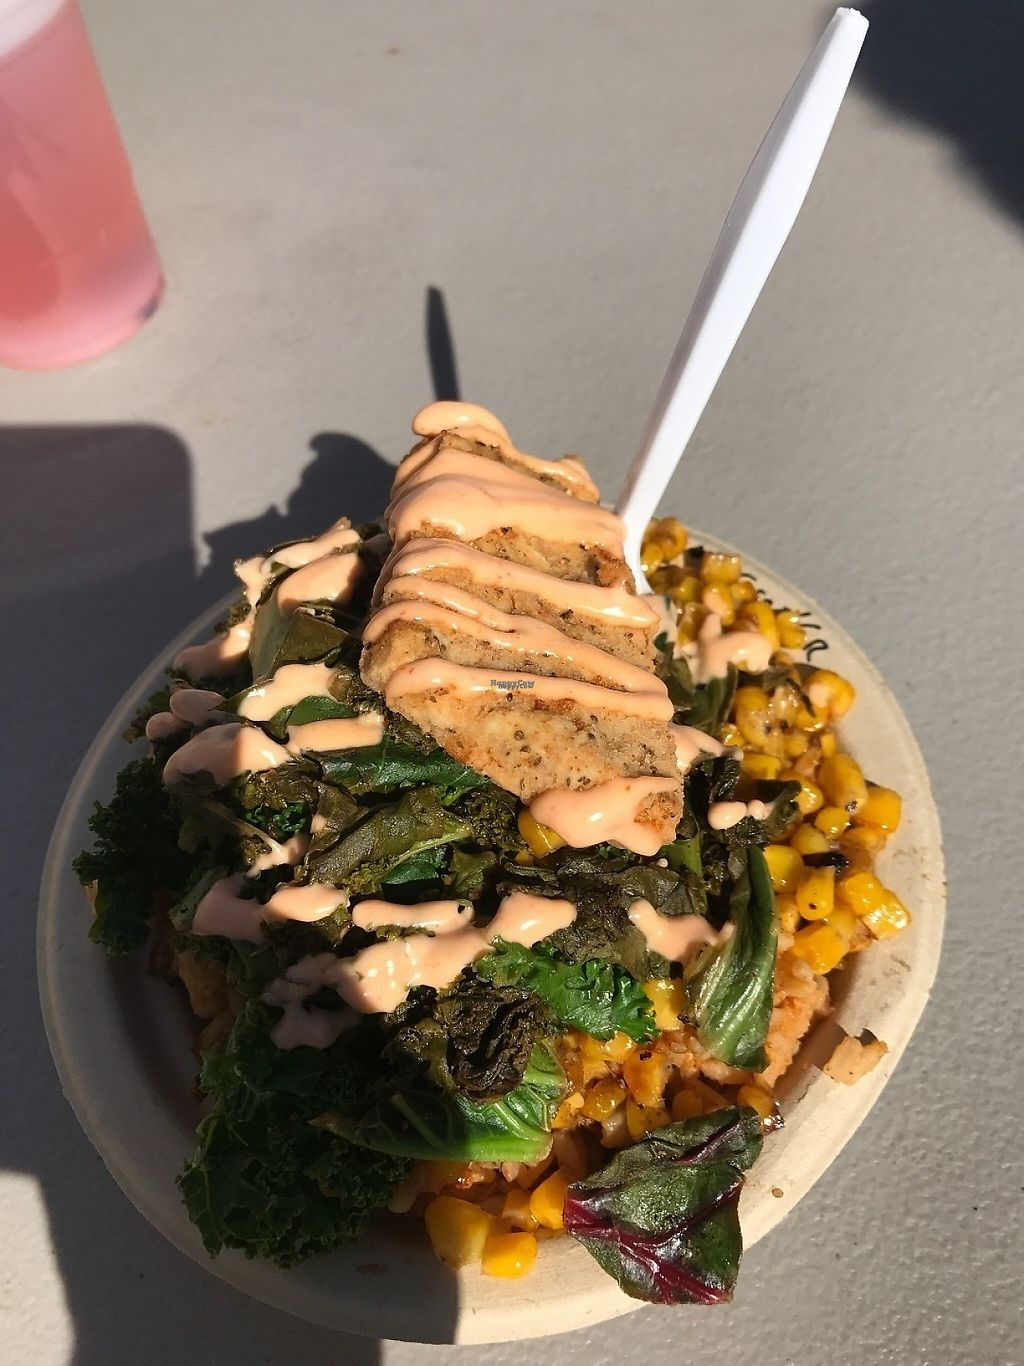 """Photo of Southern Fried Vegan BBQ  by <a href=""""/members/profile/Tigra220"""">Tigra220</a> <br/>Fried Chicken Bowl with Jambalaya, 1/2 greens & 1/2 corn - PHX Vegan Fest; Feb 2017 <br/> March 11, 2017  - <a href='/contact/abuse/image/29946/235042'>Report</a>"""